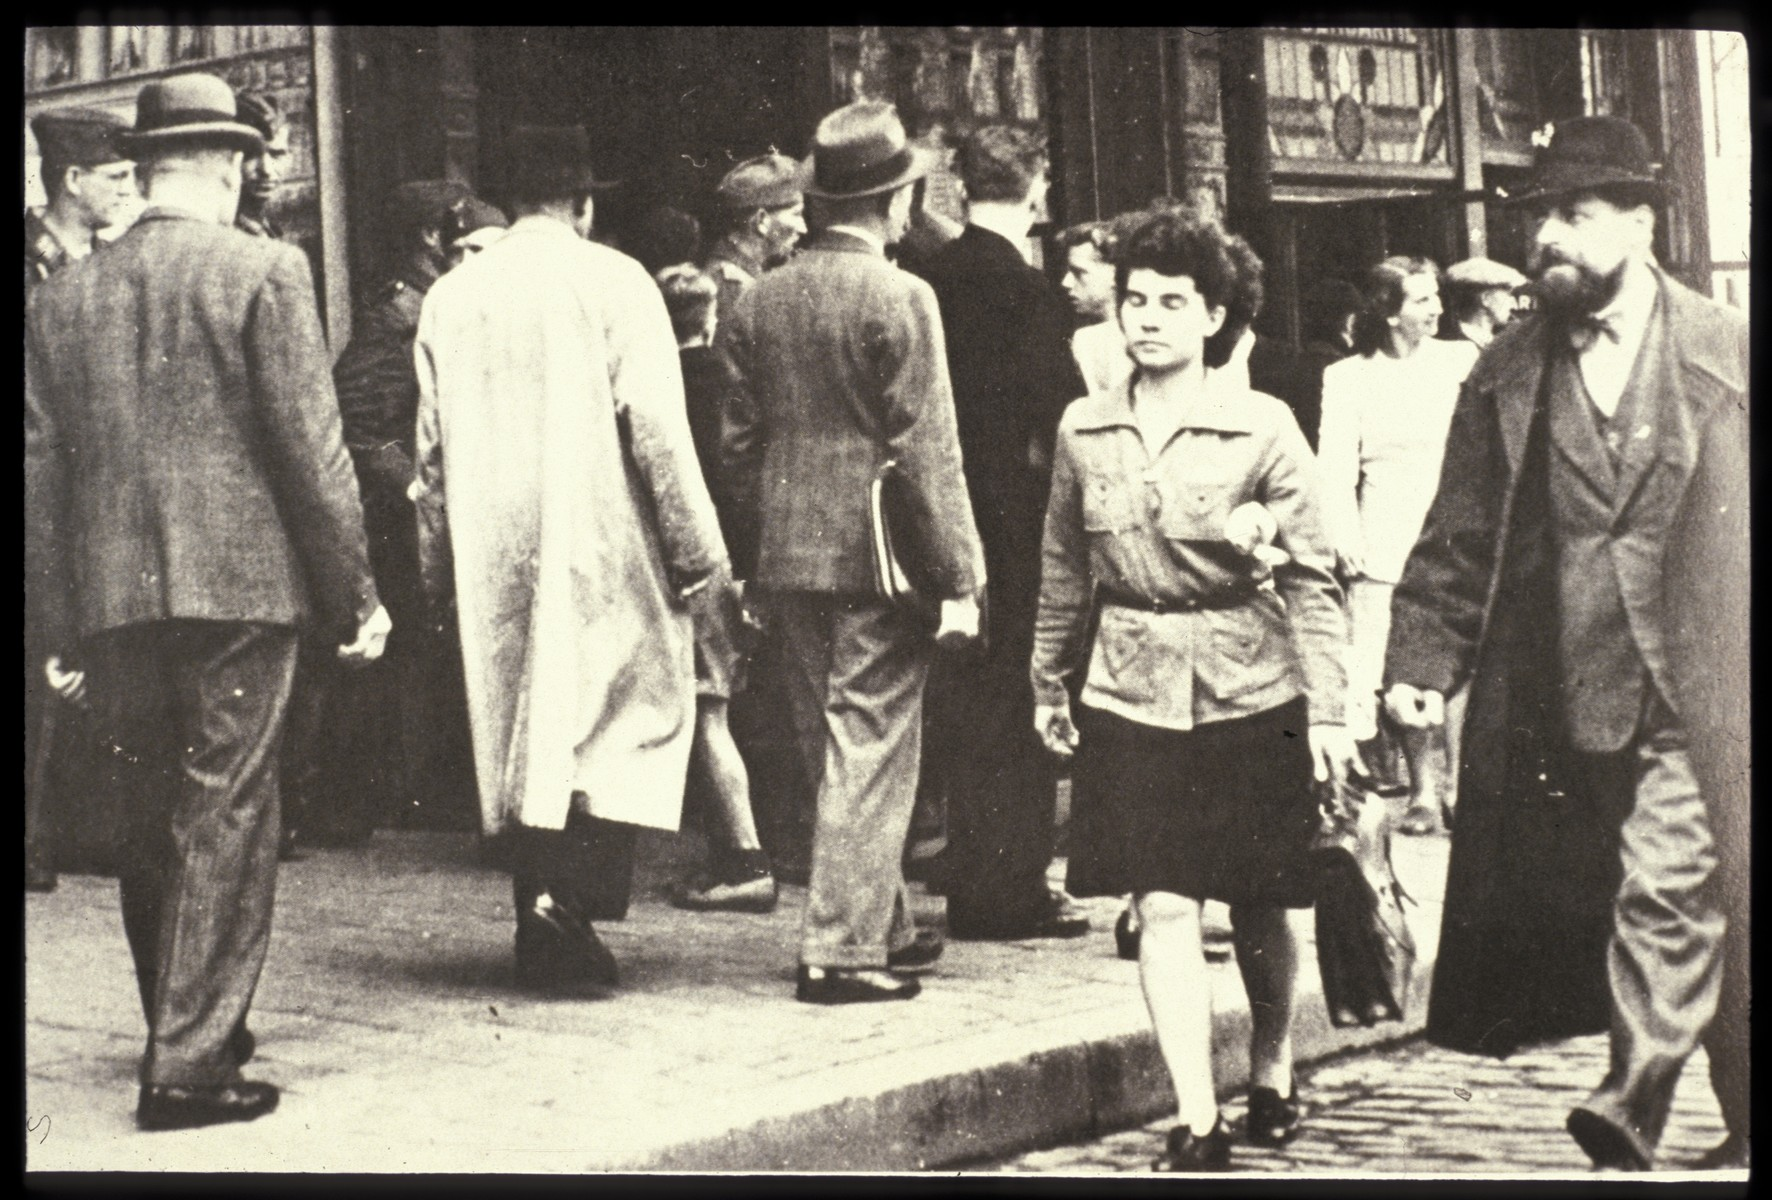 """[Belgian] Jews are forced to walk in the street.  The original photo caption reads, """"Jews in gutter."""""""